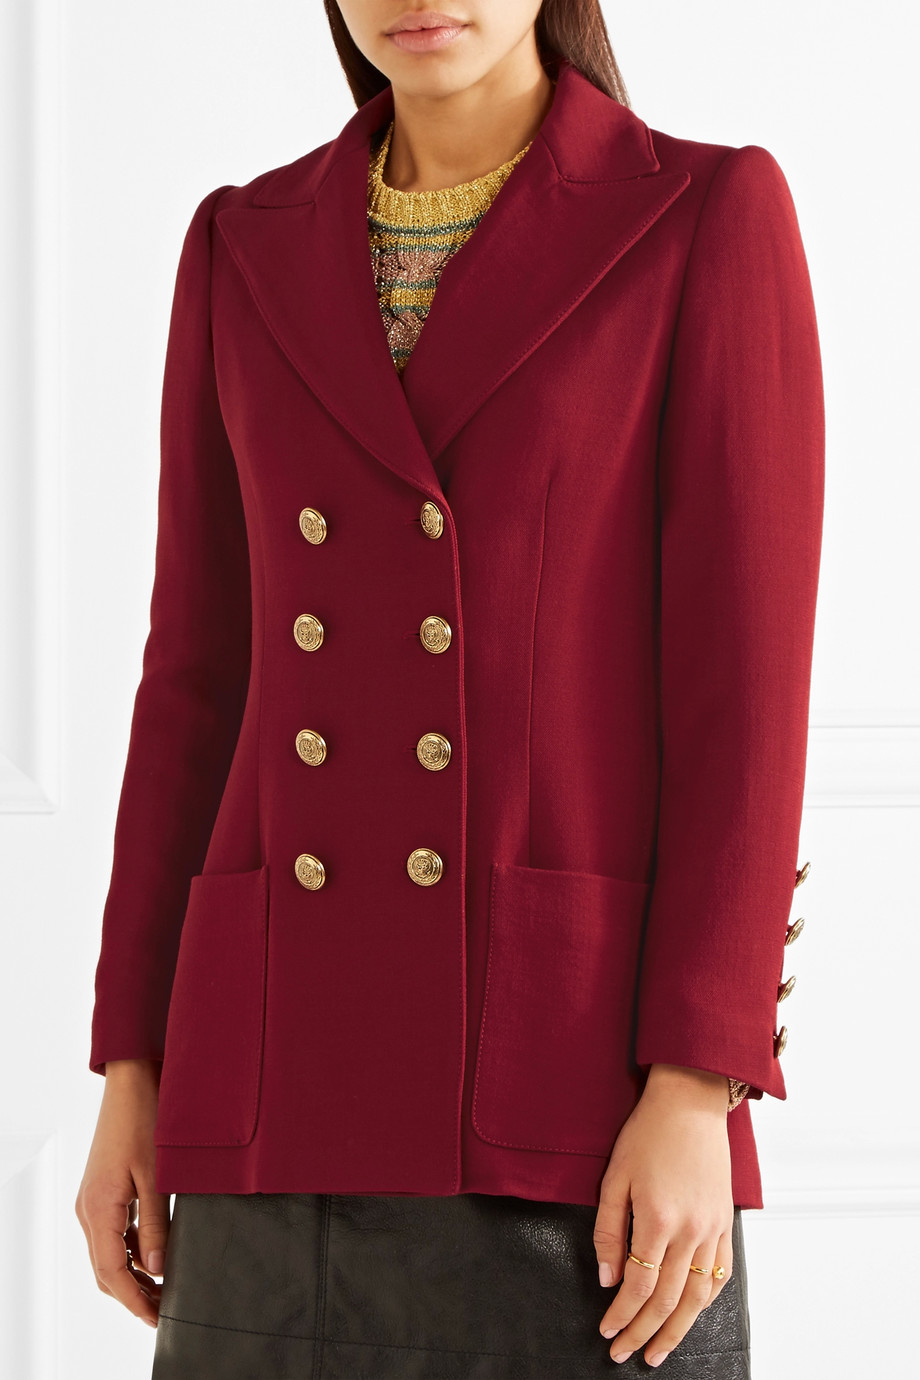 Philosophy di Lorenzo Serafini jacket in burgundy red